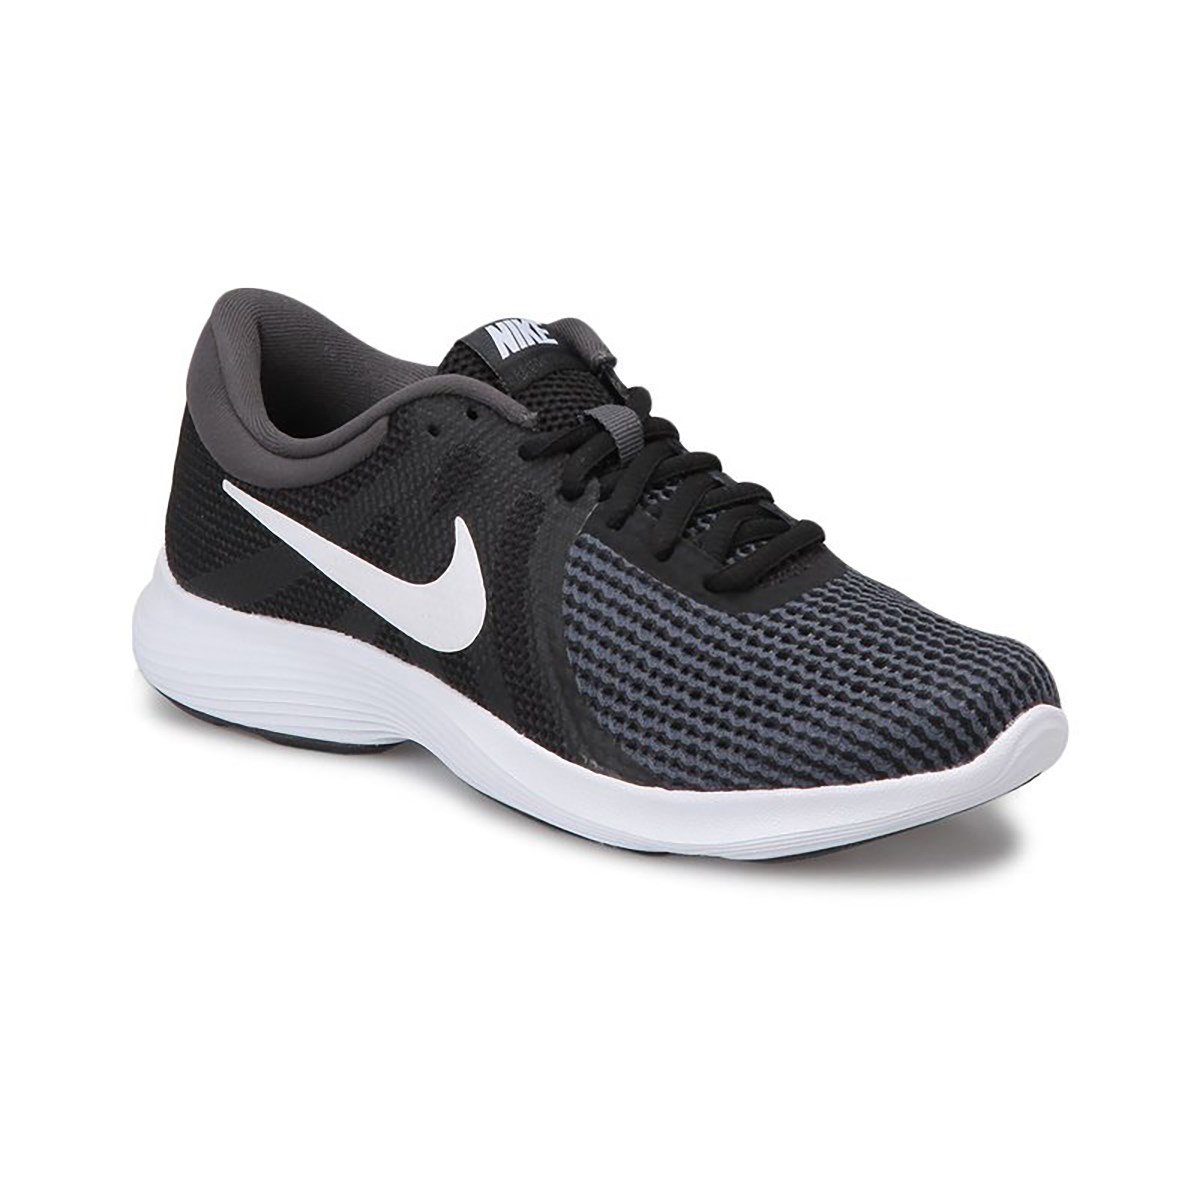 NIKE Кроссовки женские WMNS NIKE REVOLUTION 4 EU, black, grey